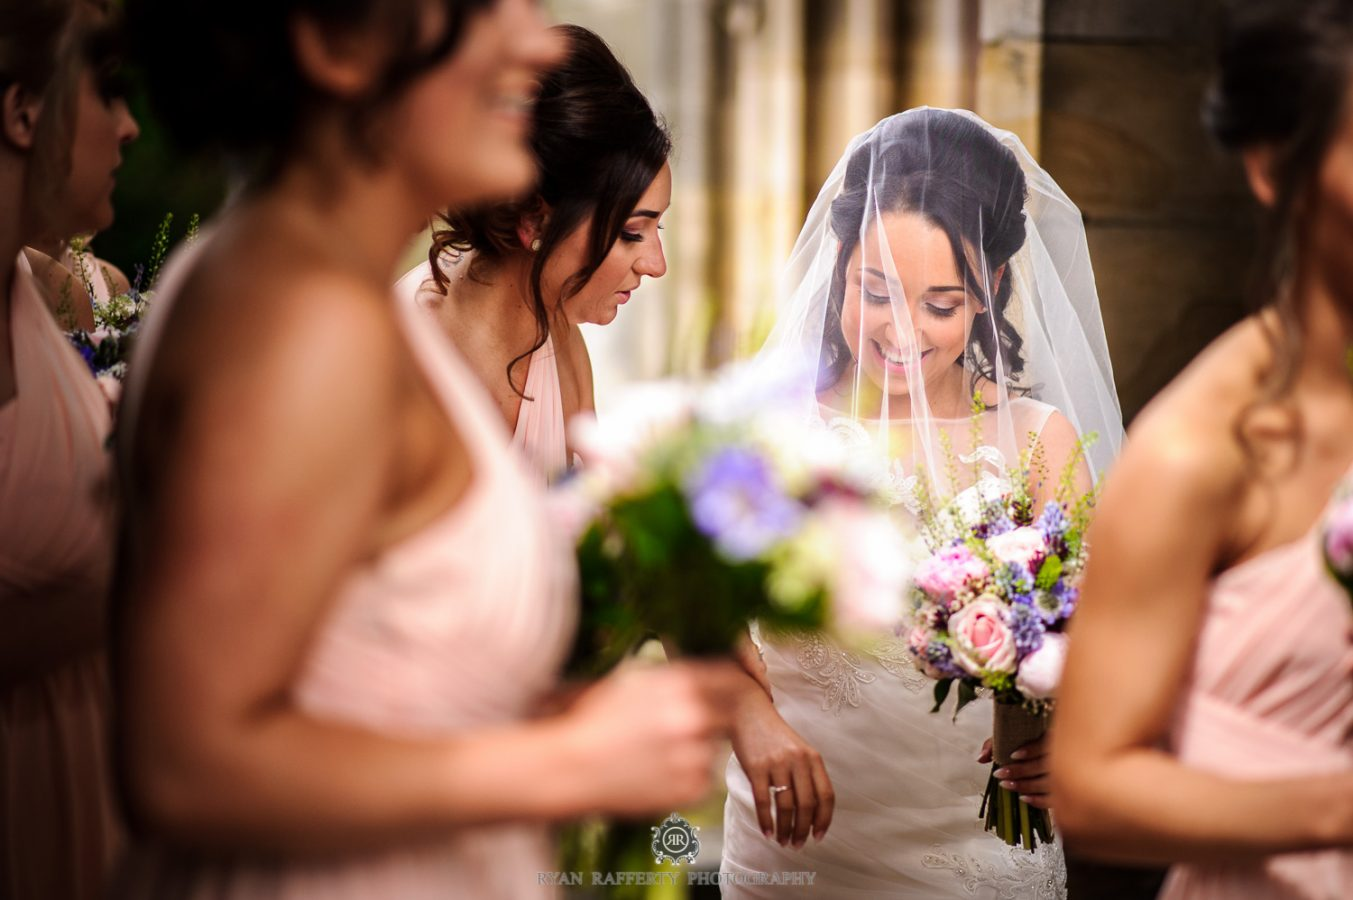 Photograph taken by Manchester wedding photographer Ryan Rafferty